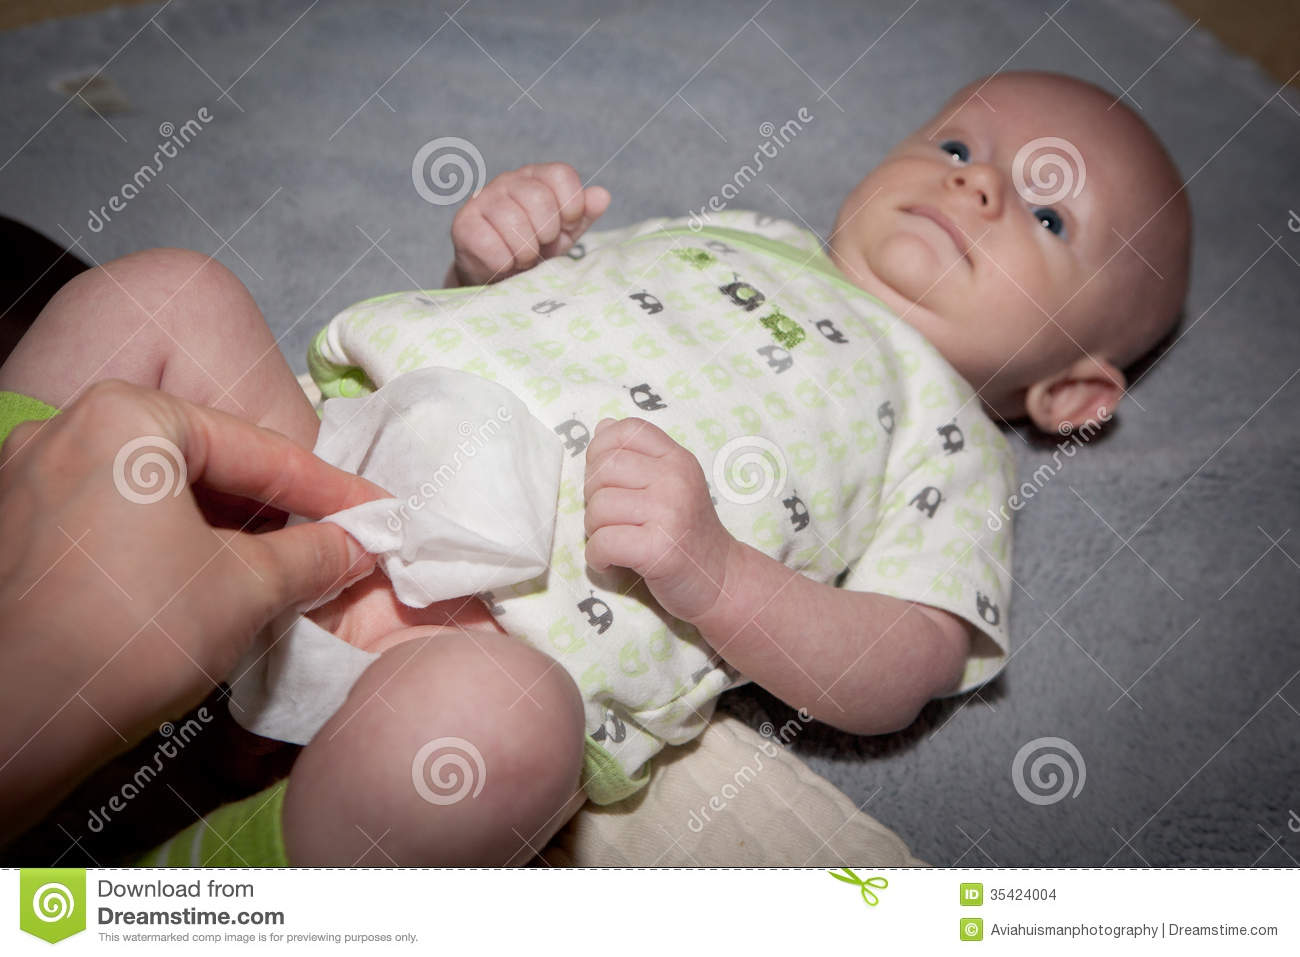 how to change a baby s diaper Finding the right size diaper for your baby can be tough they grow quickly, grow in different directions, and the diaper size that worked yesterday may not work today.